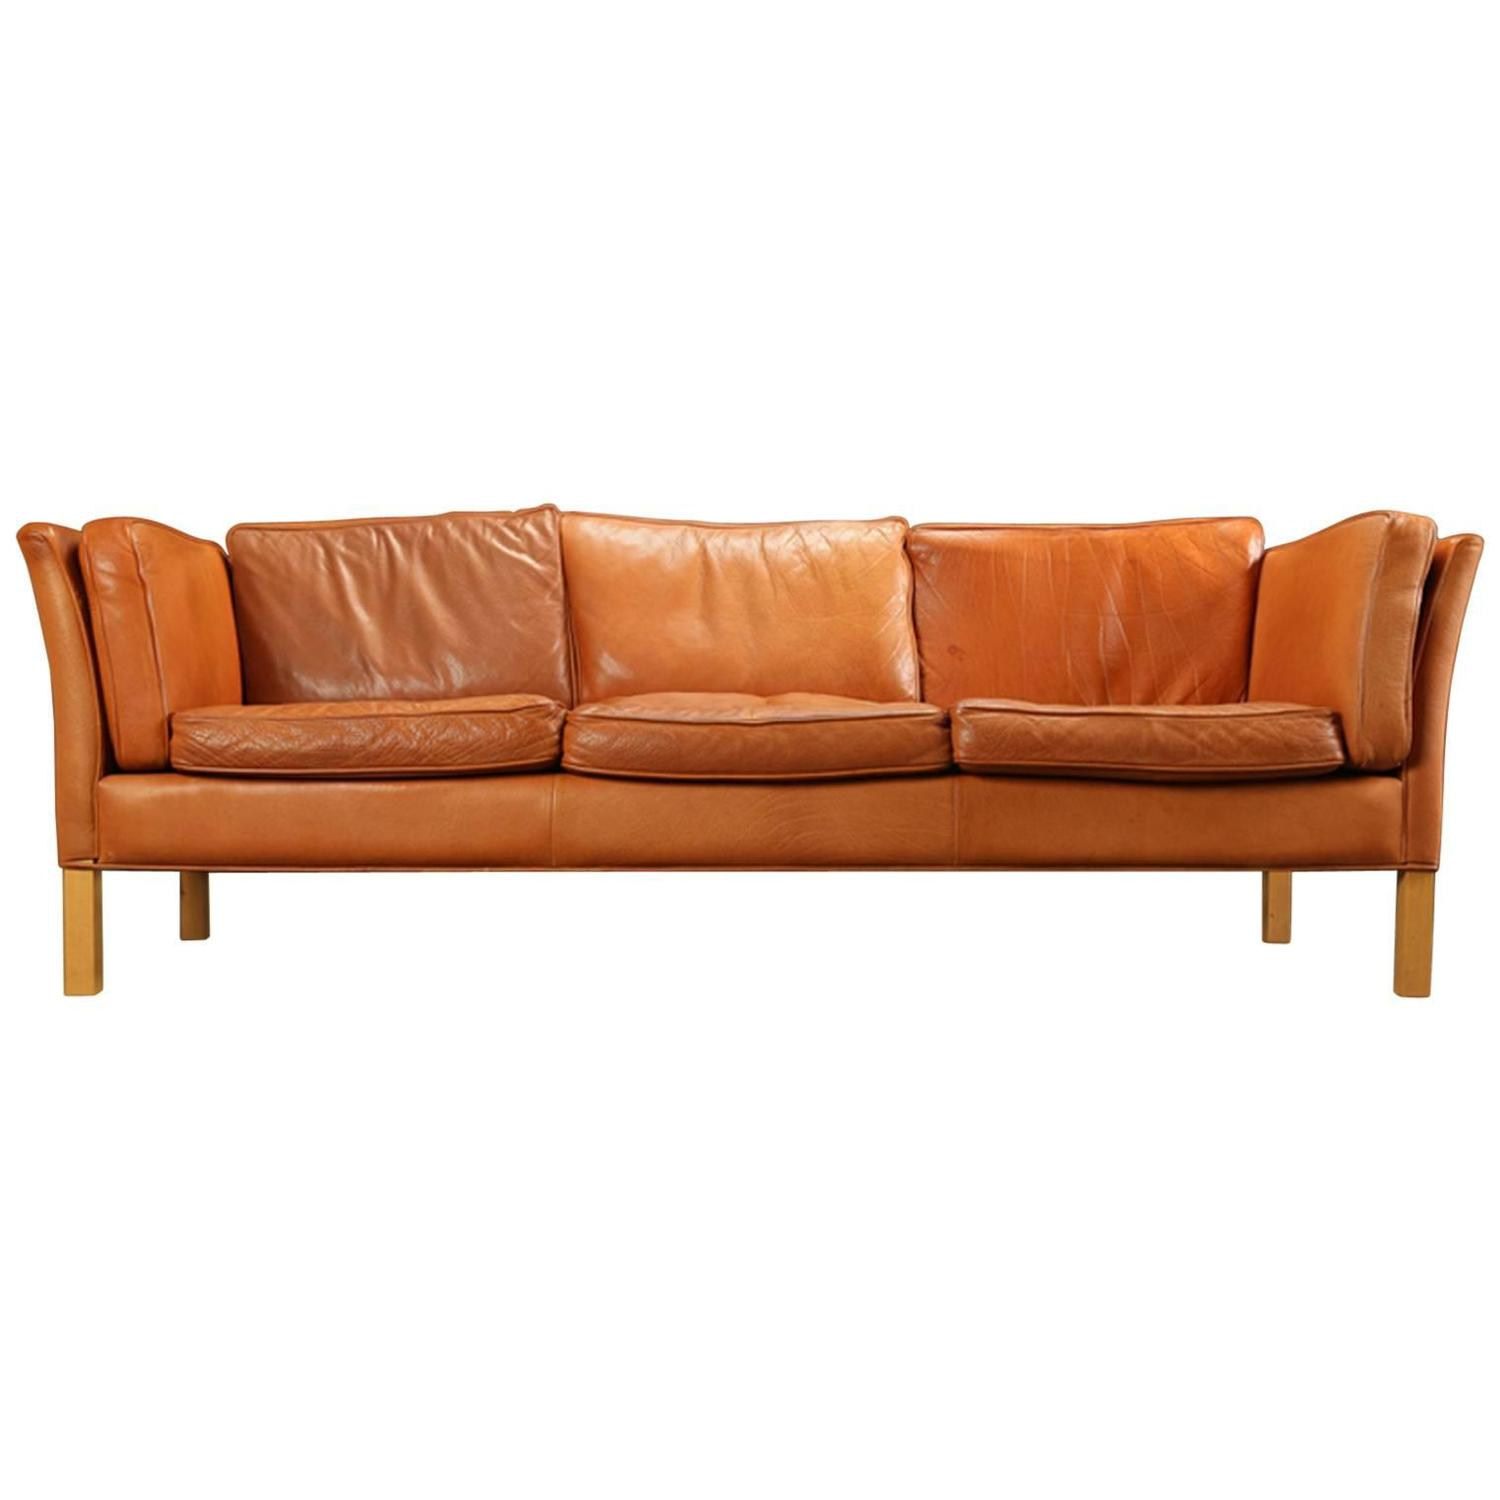 Vintage Upholstered Leather Sofa: Vintage Sofas 1950s 1960s 1970s